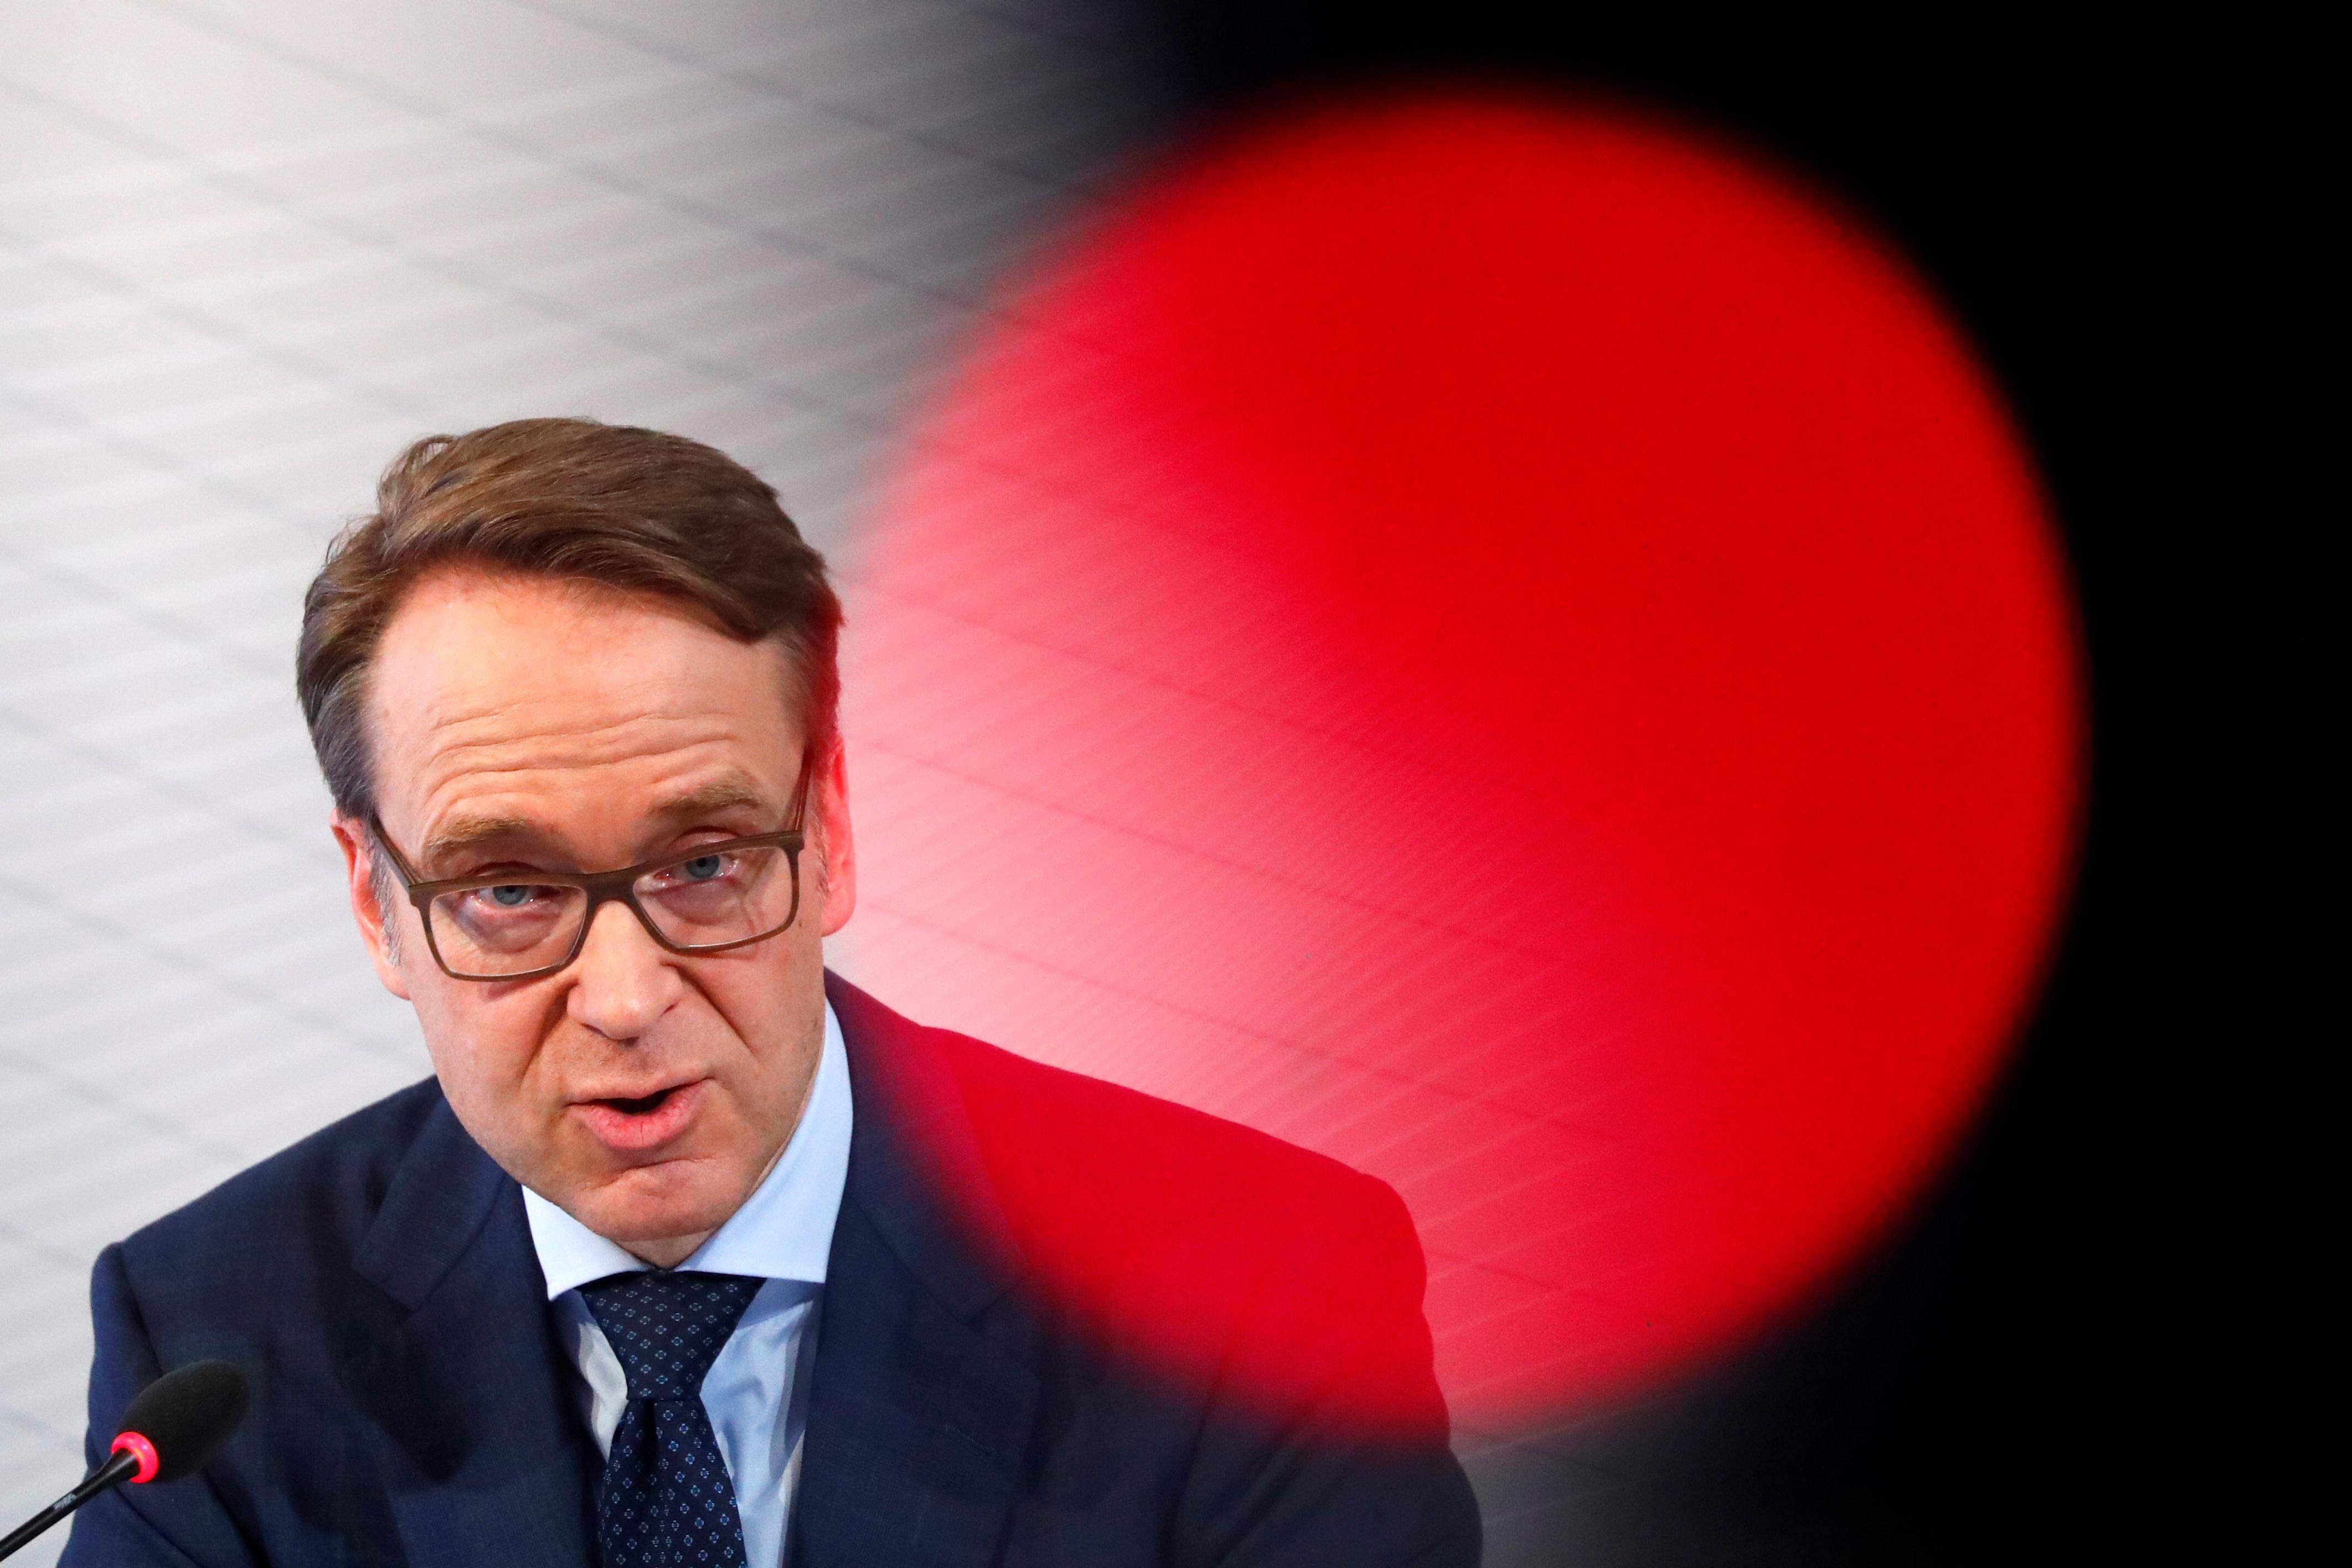 ECB's Weidmann appears to drop opposition to OMT amid race to succeed Draghi